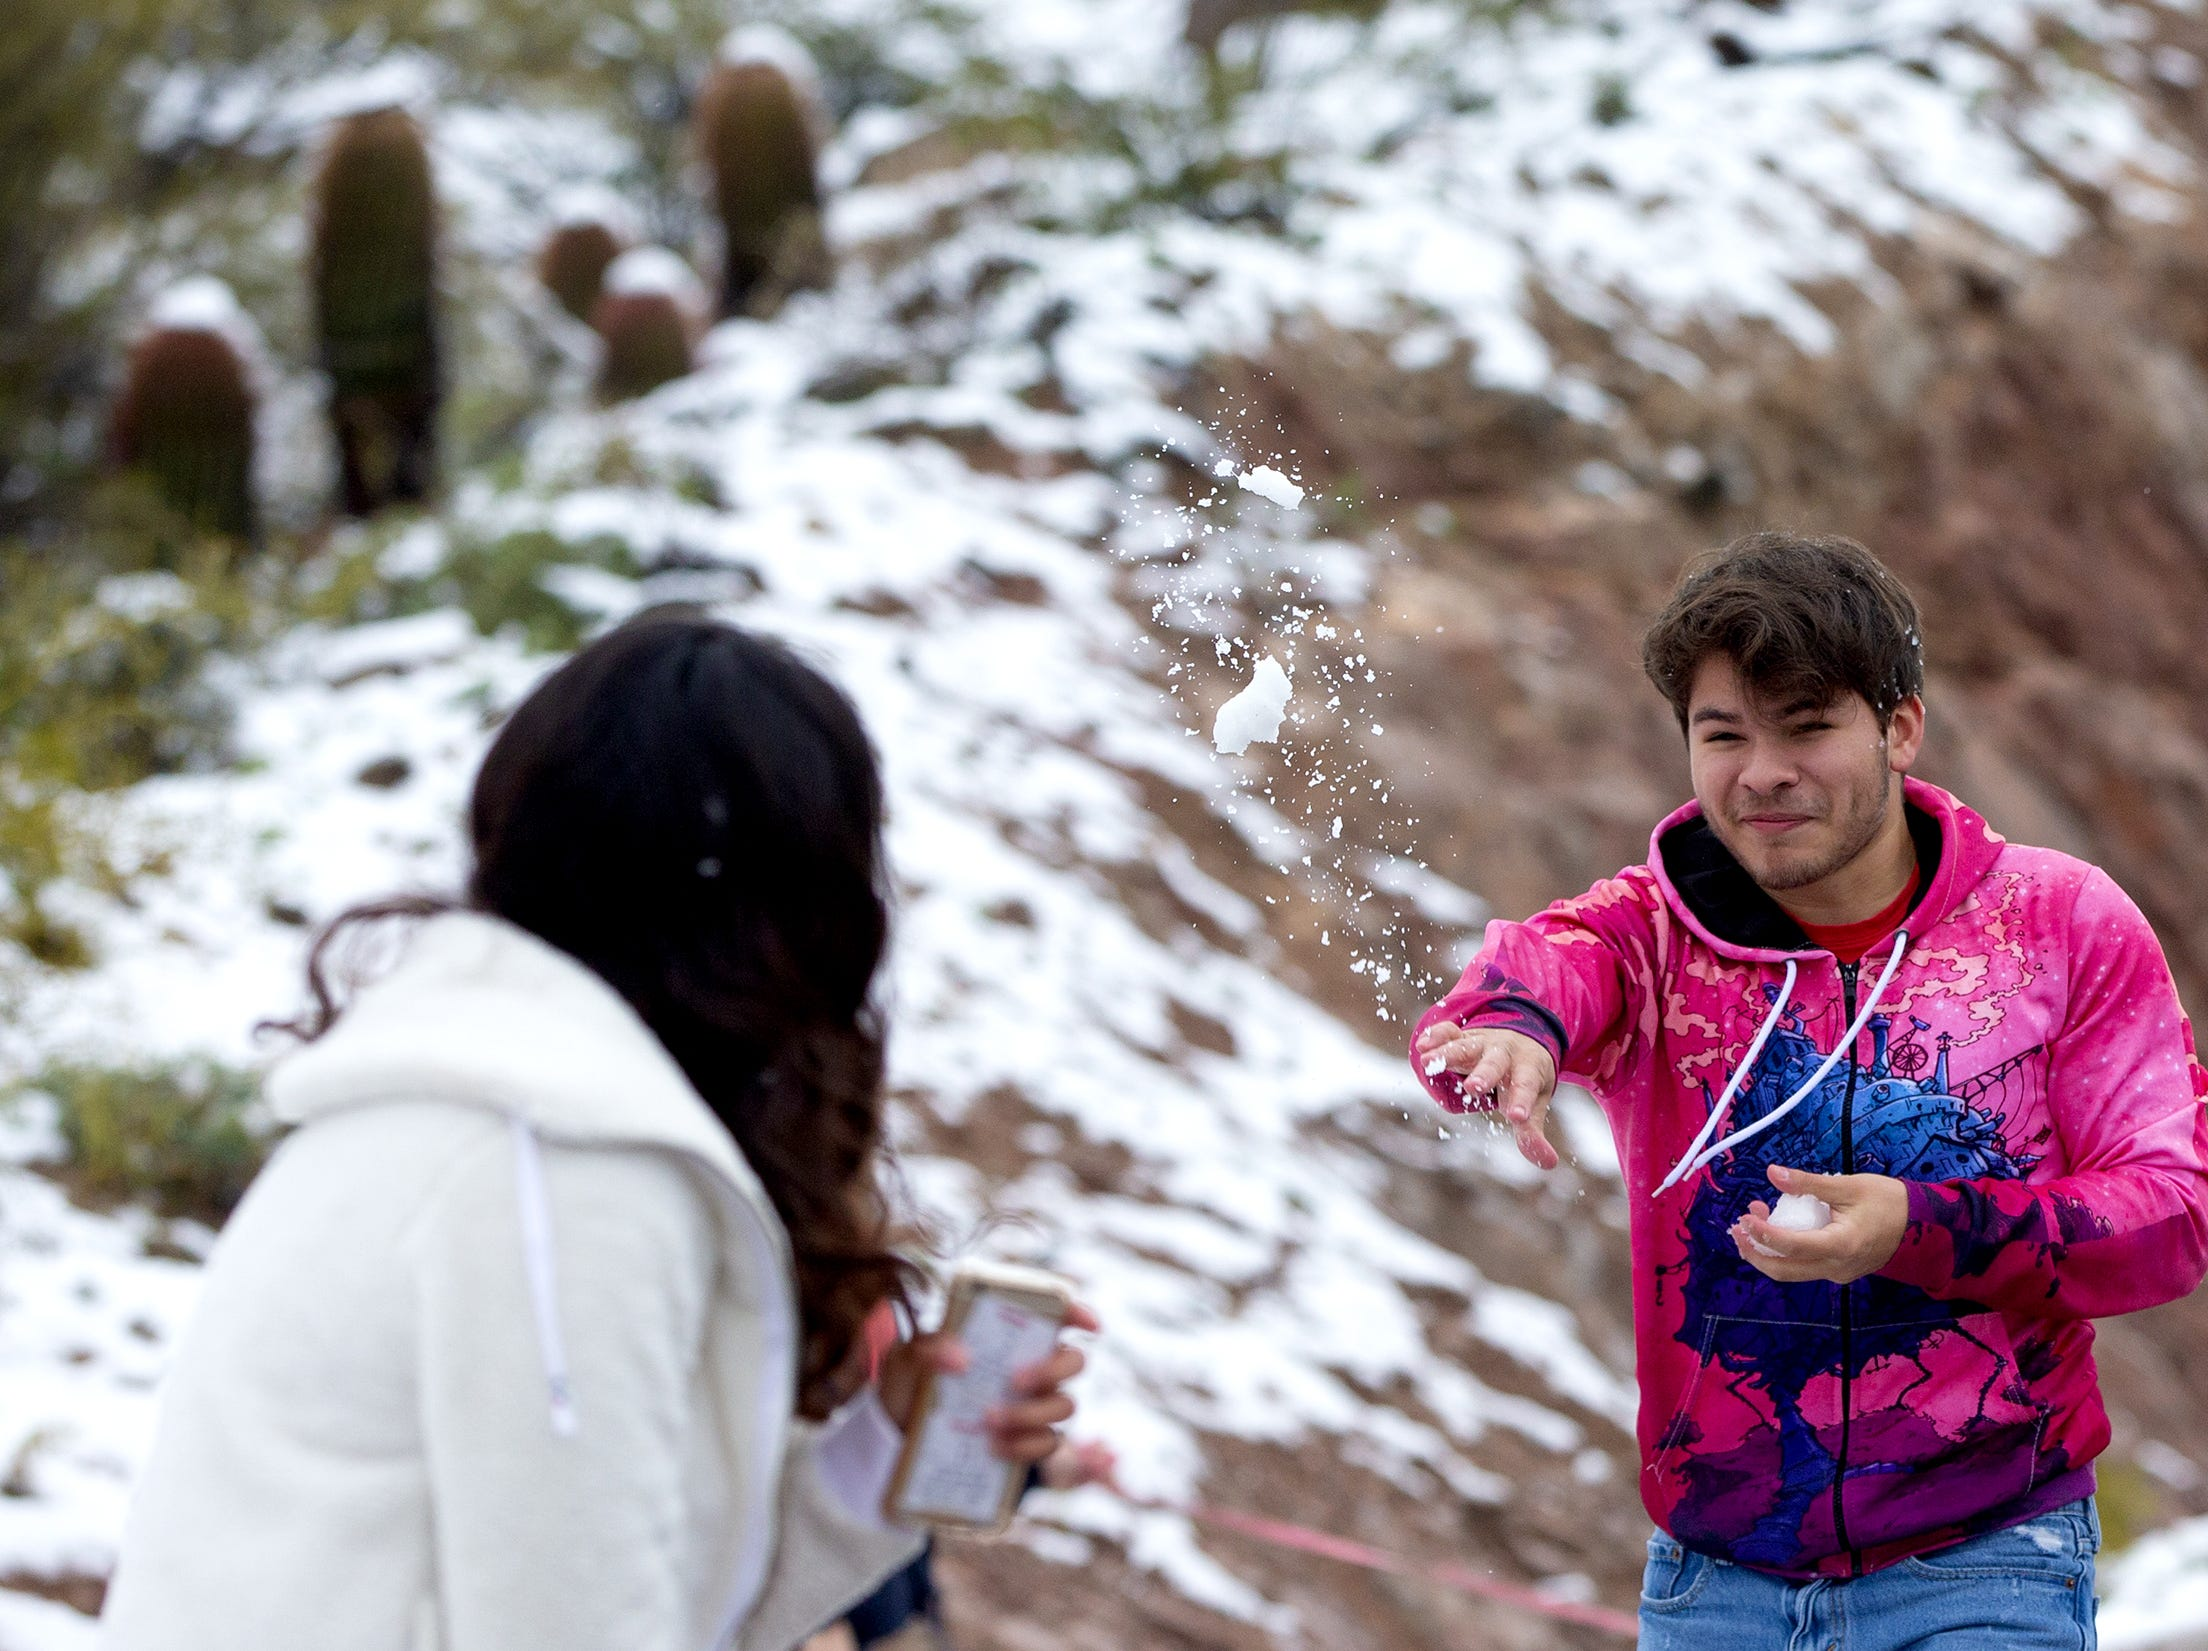 Marco Medina, 18, throws a snowball at Ana Montes, 18, after a winter storm brought snow to Fountain Hills.